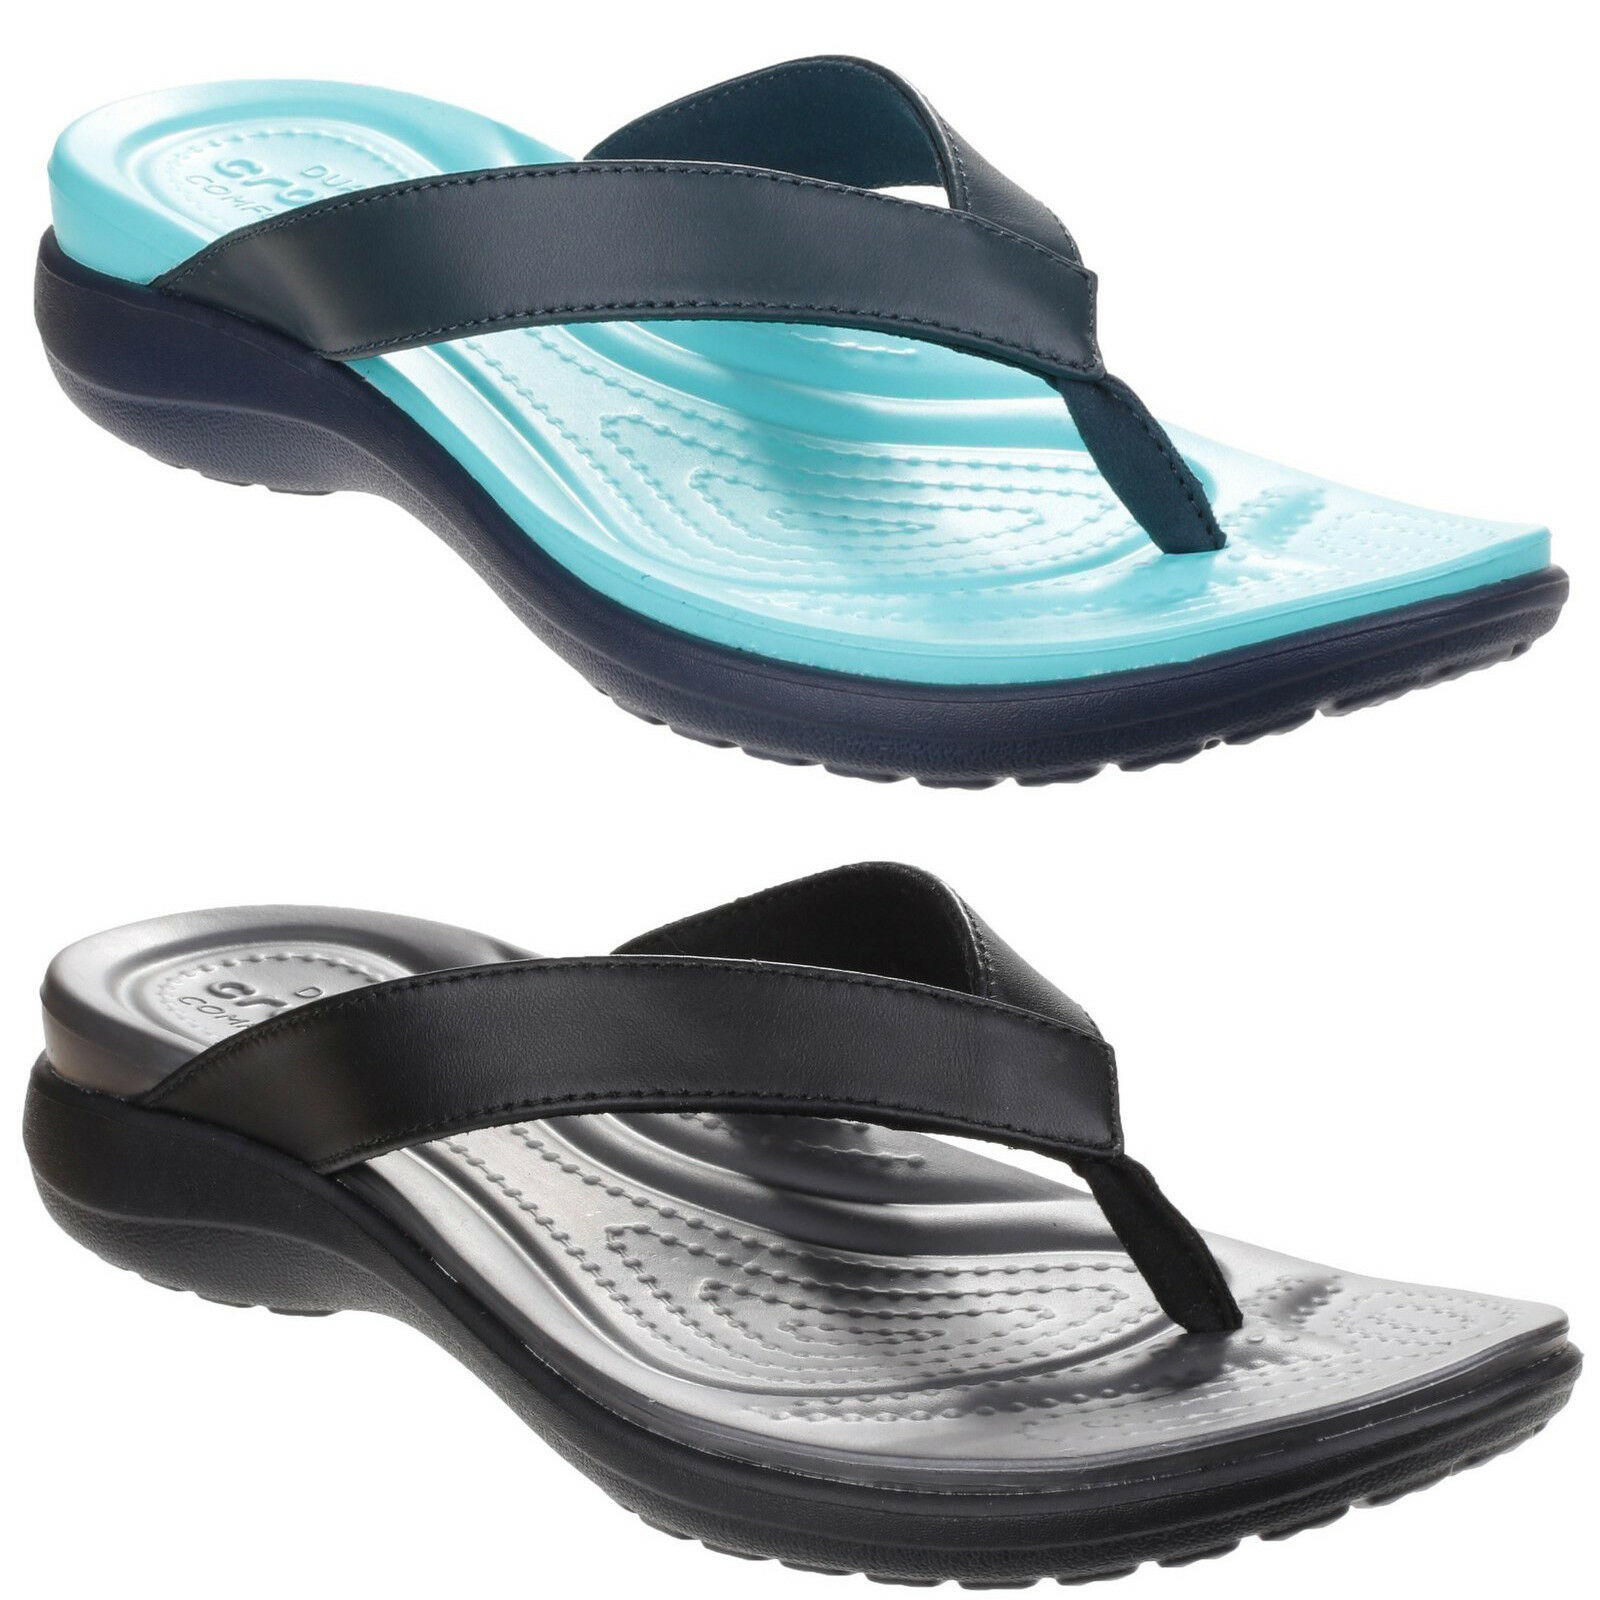 127a5eebbb4 Crocs Capri V Flip Sandals Womens Croslite Foam Footbed Toe Post Flip Flops